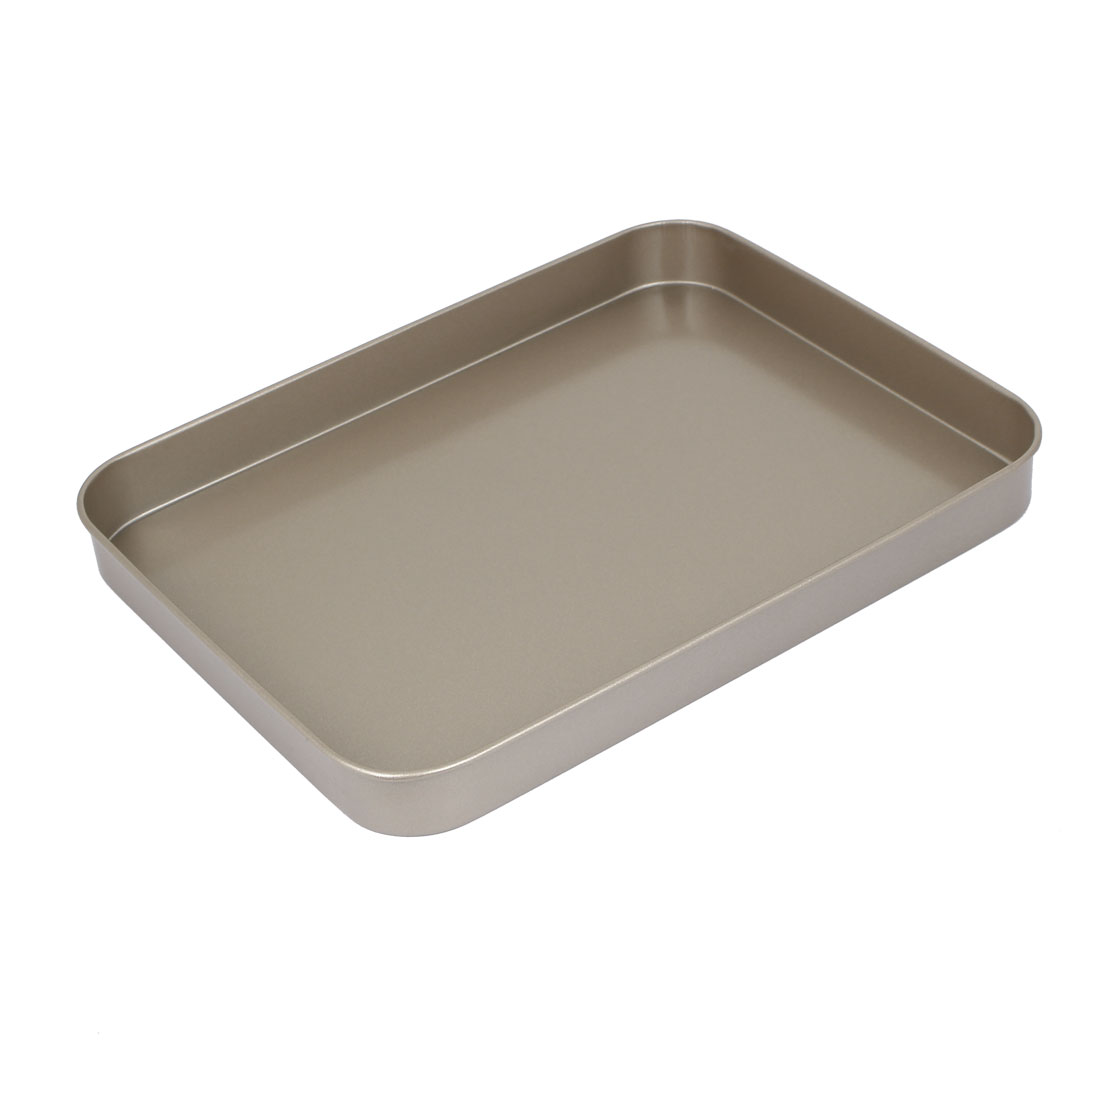 Cake Shop Carbon Steel Non-stick Coating Baking Mold Mould Bakeware Pan